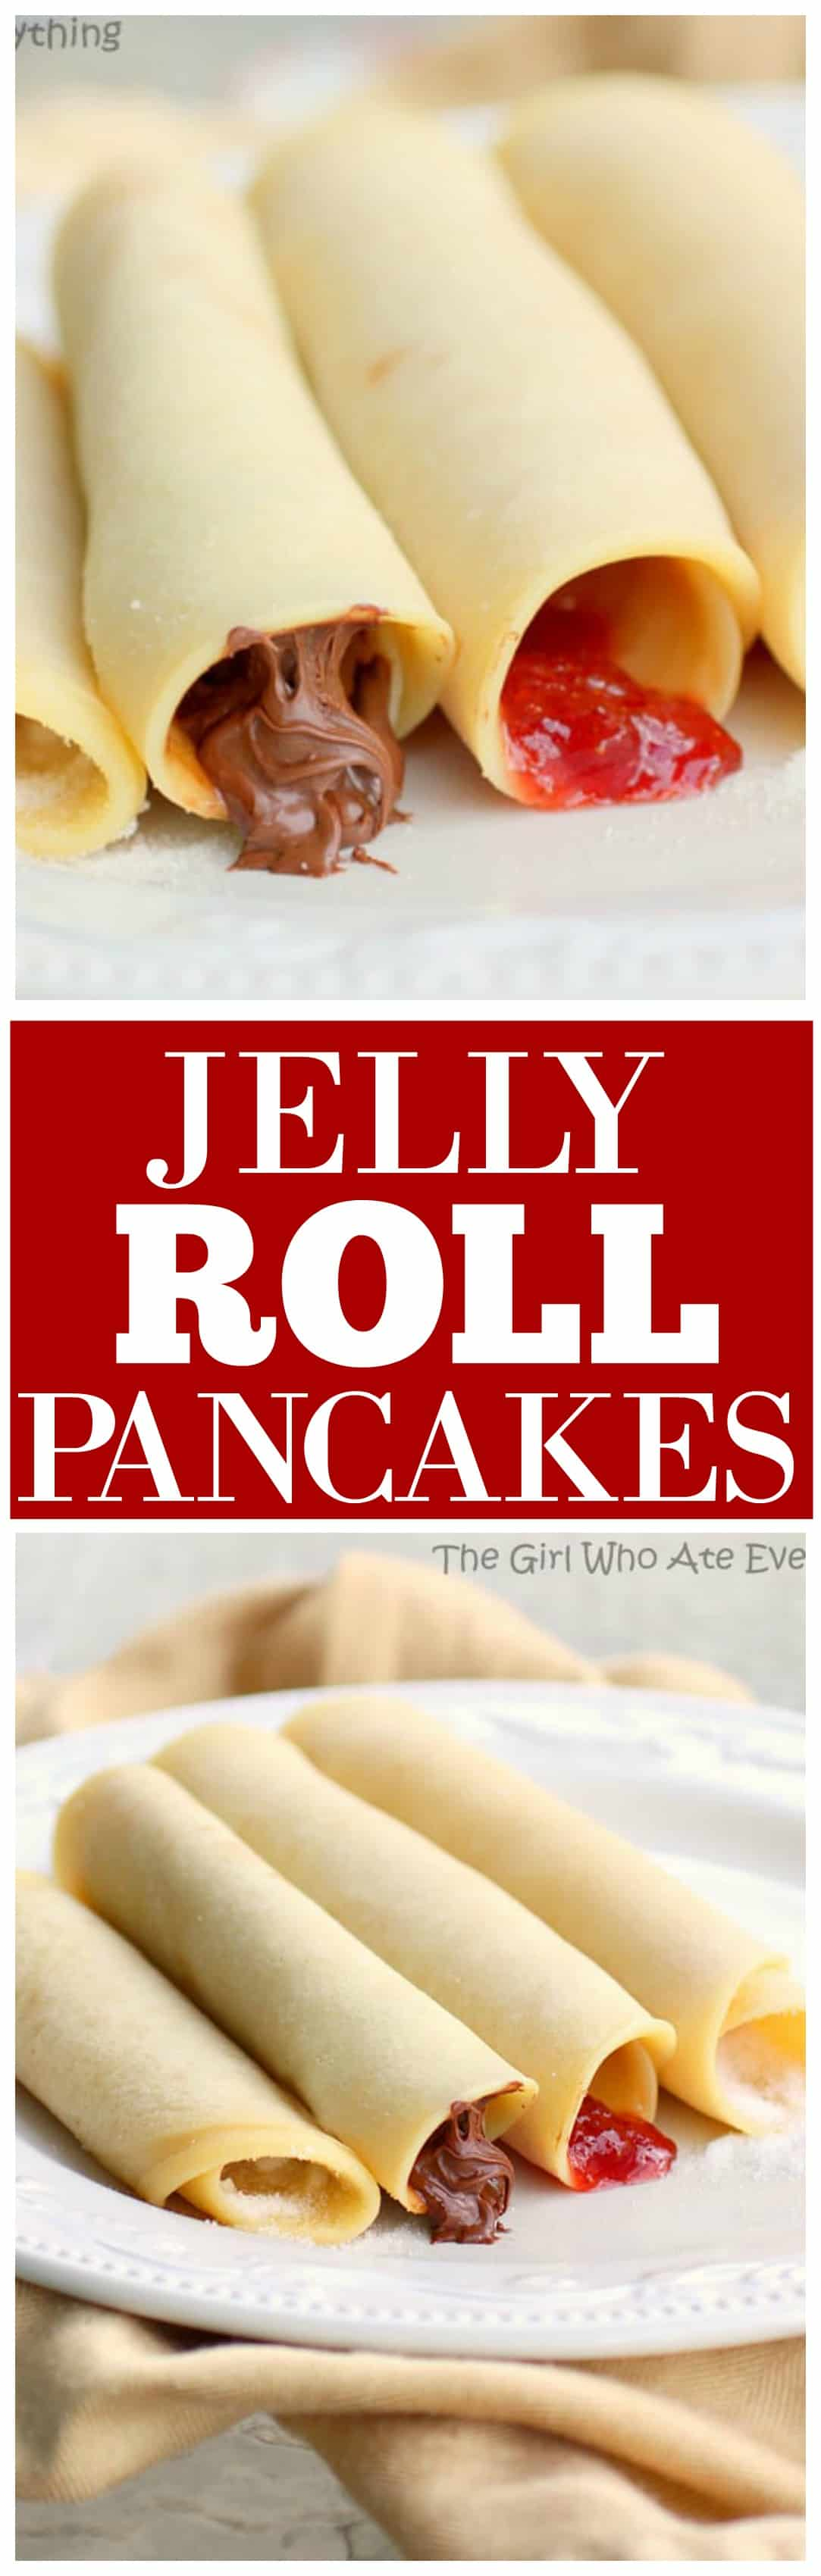 Jelly Roll Pancakes on a plate